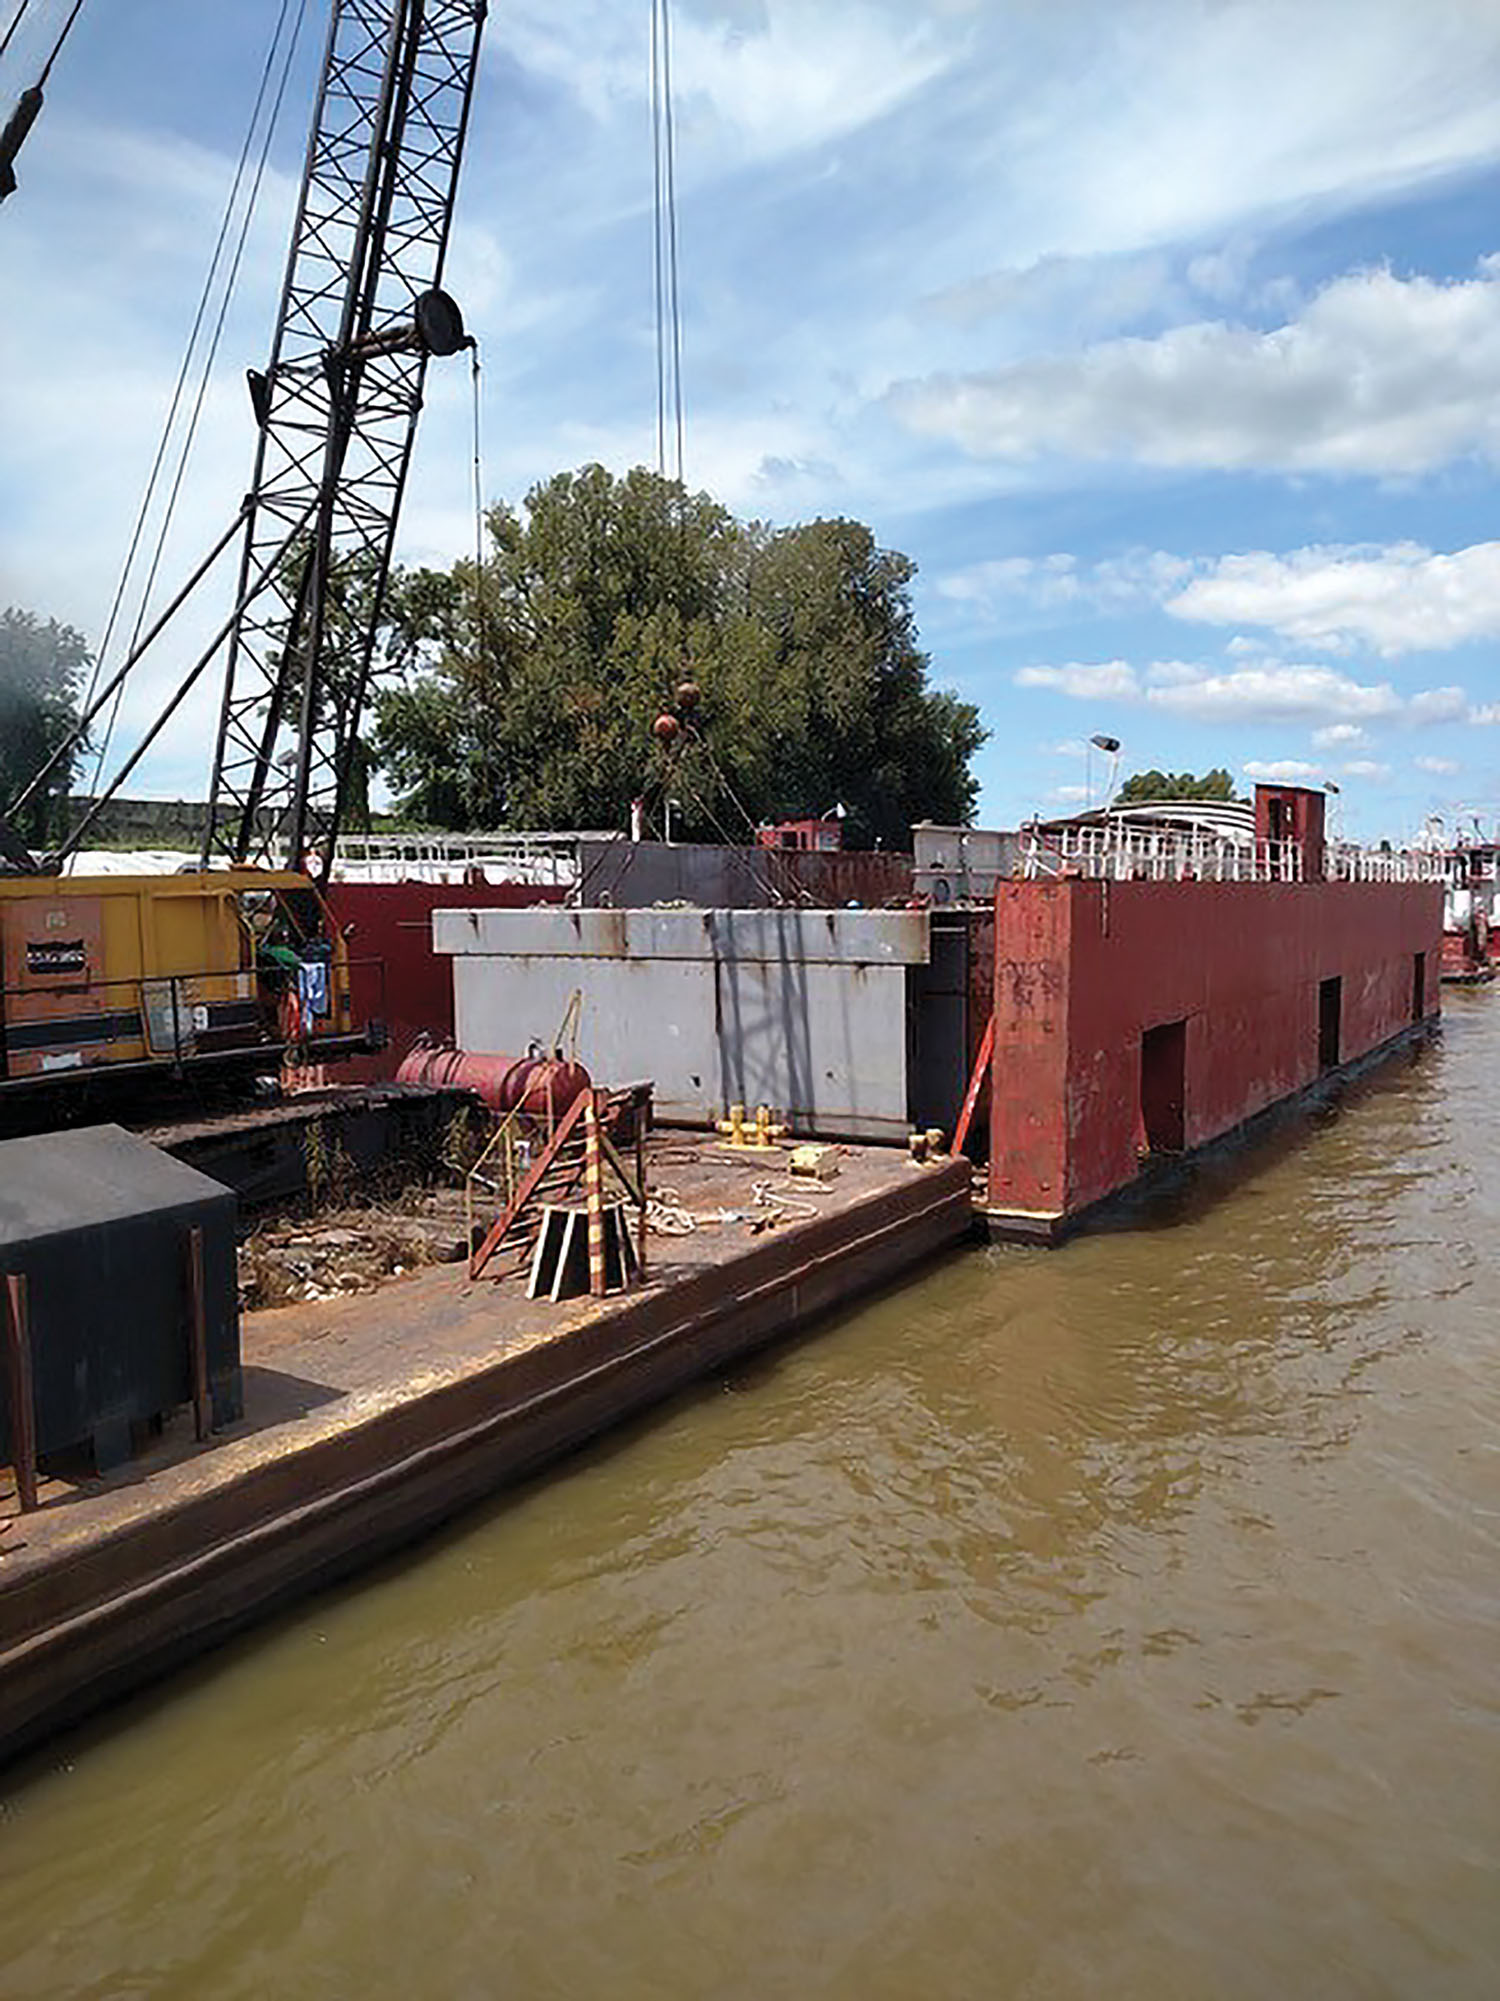 Waterfront Services Company has expanded its shipyard and fleeting operations since it was founded on the confluence of the Ohio and Mississippi rivers in Cairo, Ill., in 1967. (Photo courtesy of Waterfront Services)